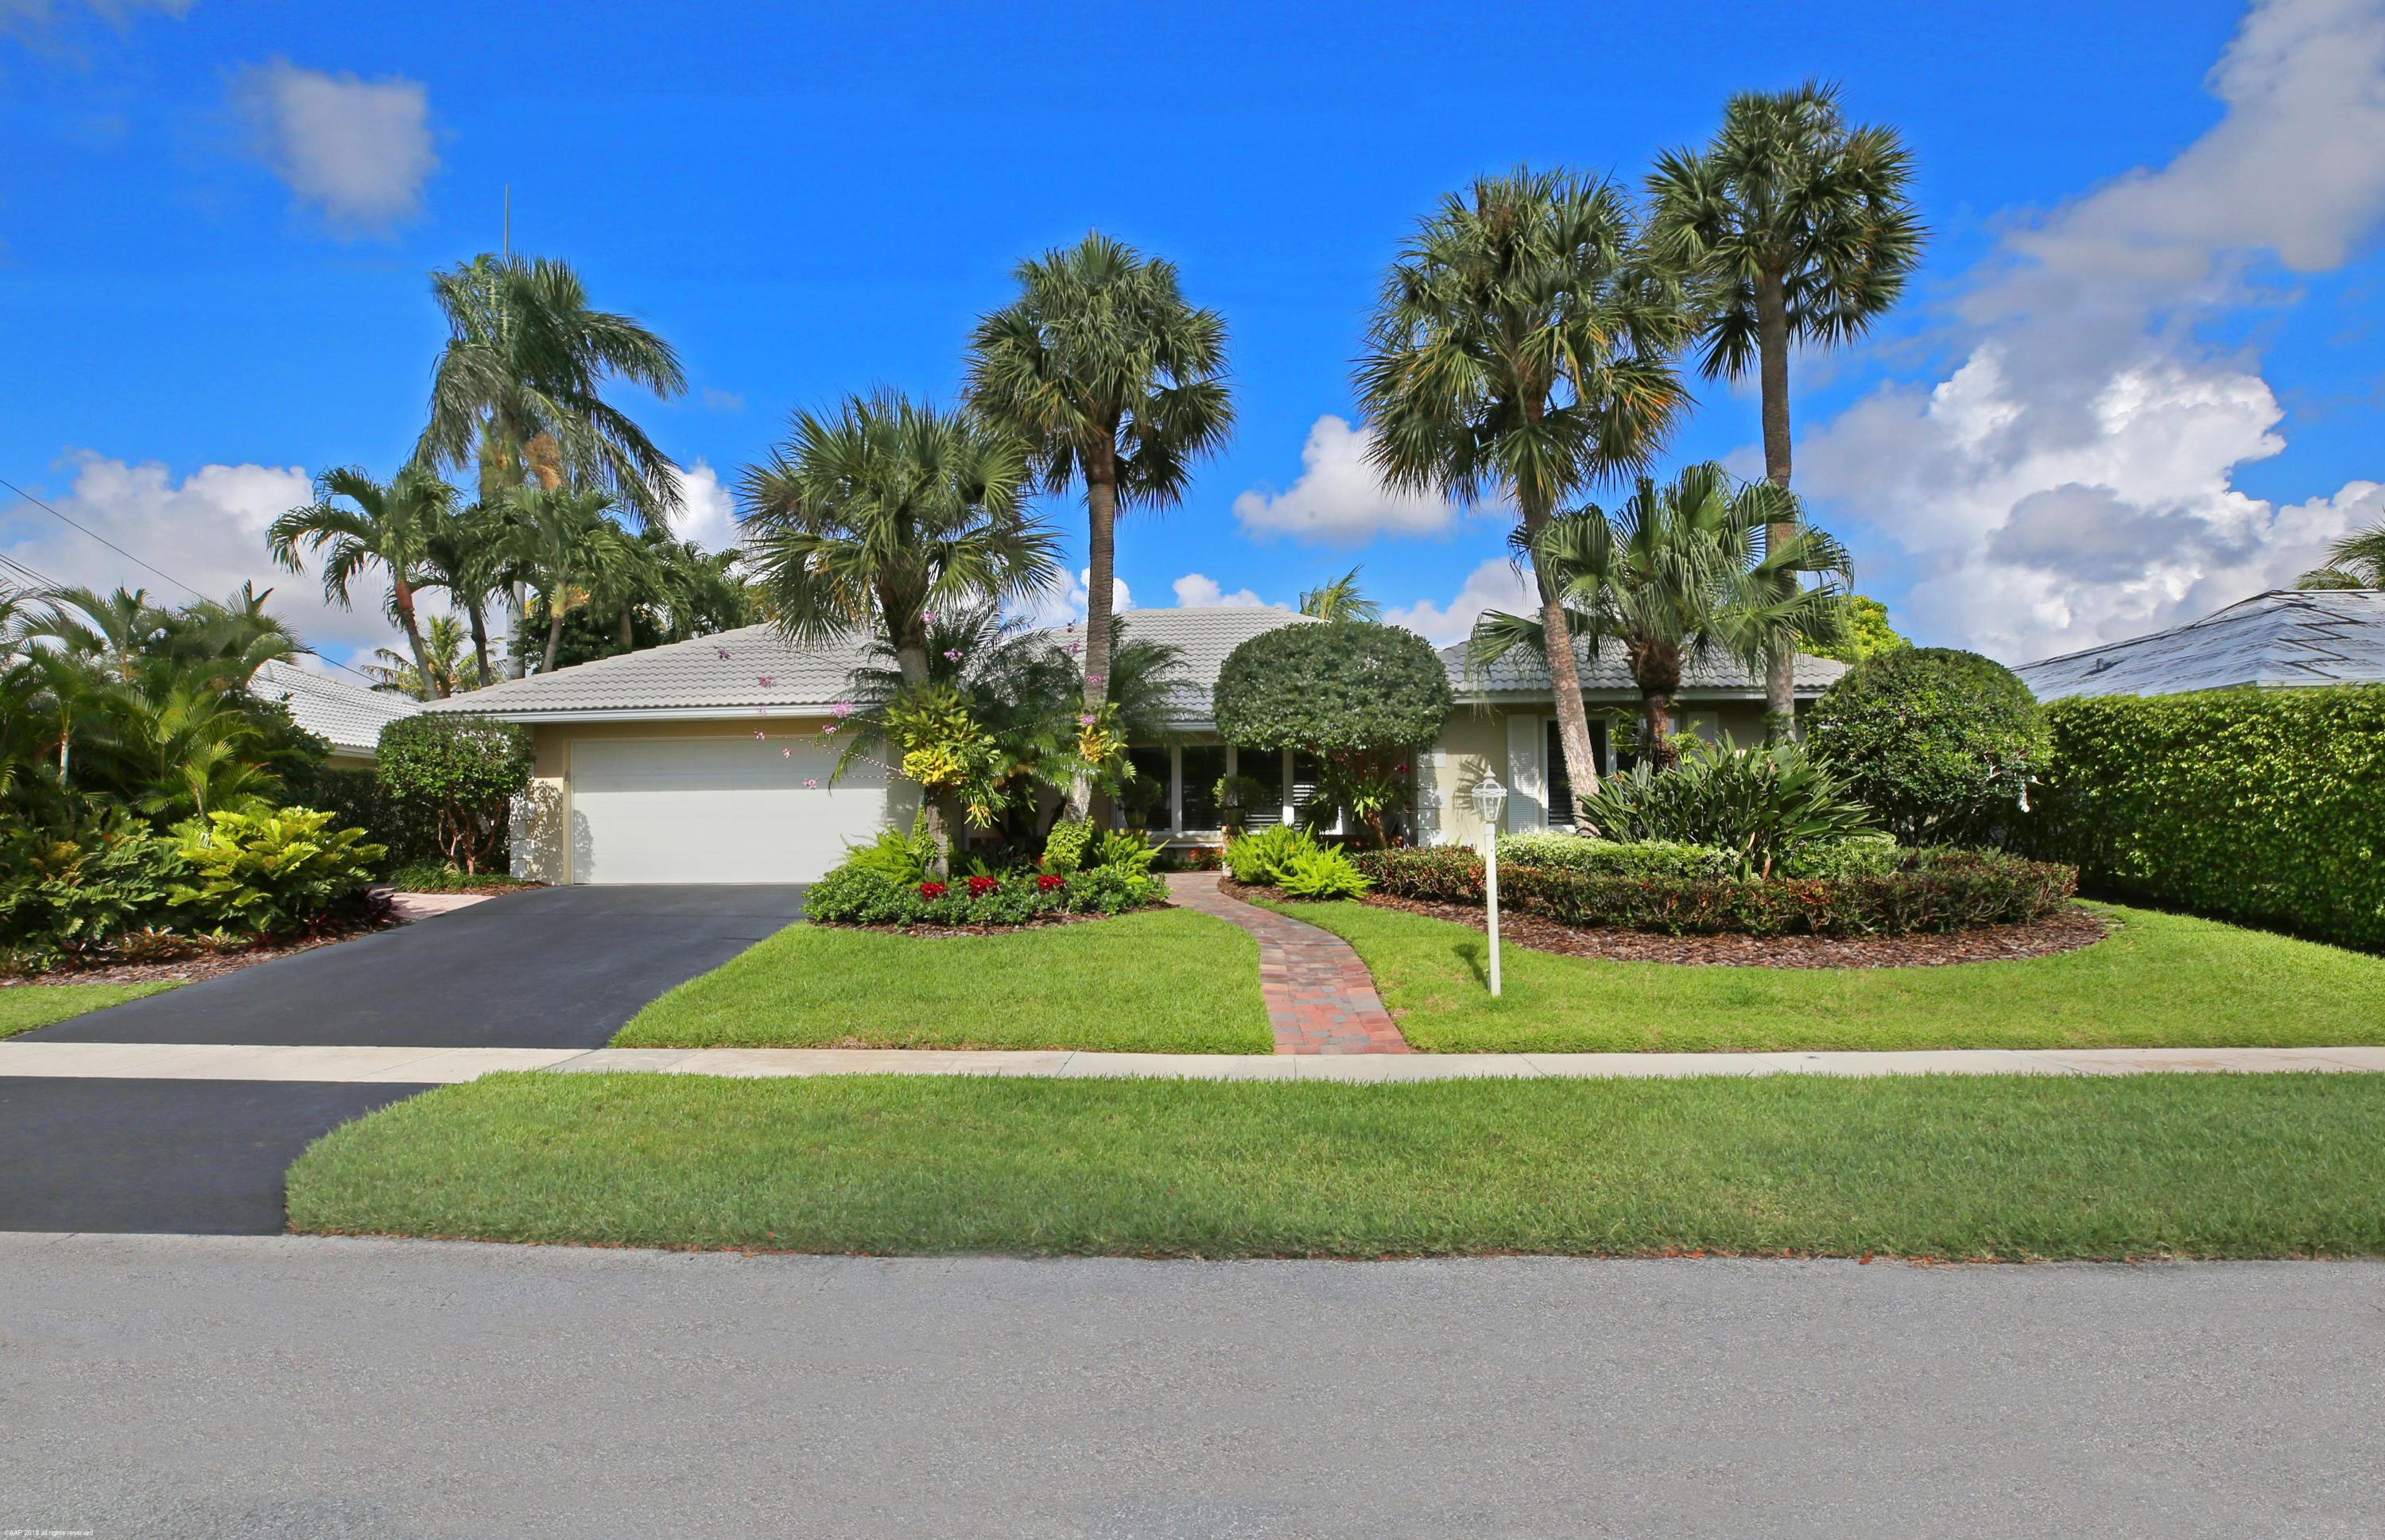 Boca Raton- Florida 33486, 3 Bedrooms Bedrooms, ,2 BathroomsBathrooms,Residential,For Sale,Hickory,RX-10530550